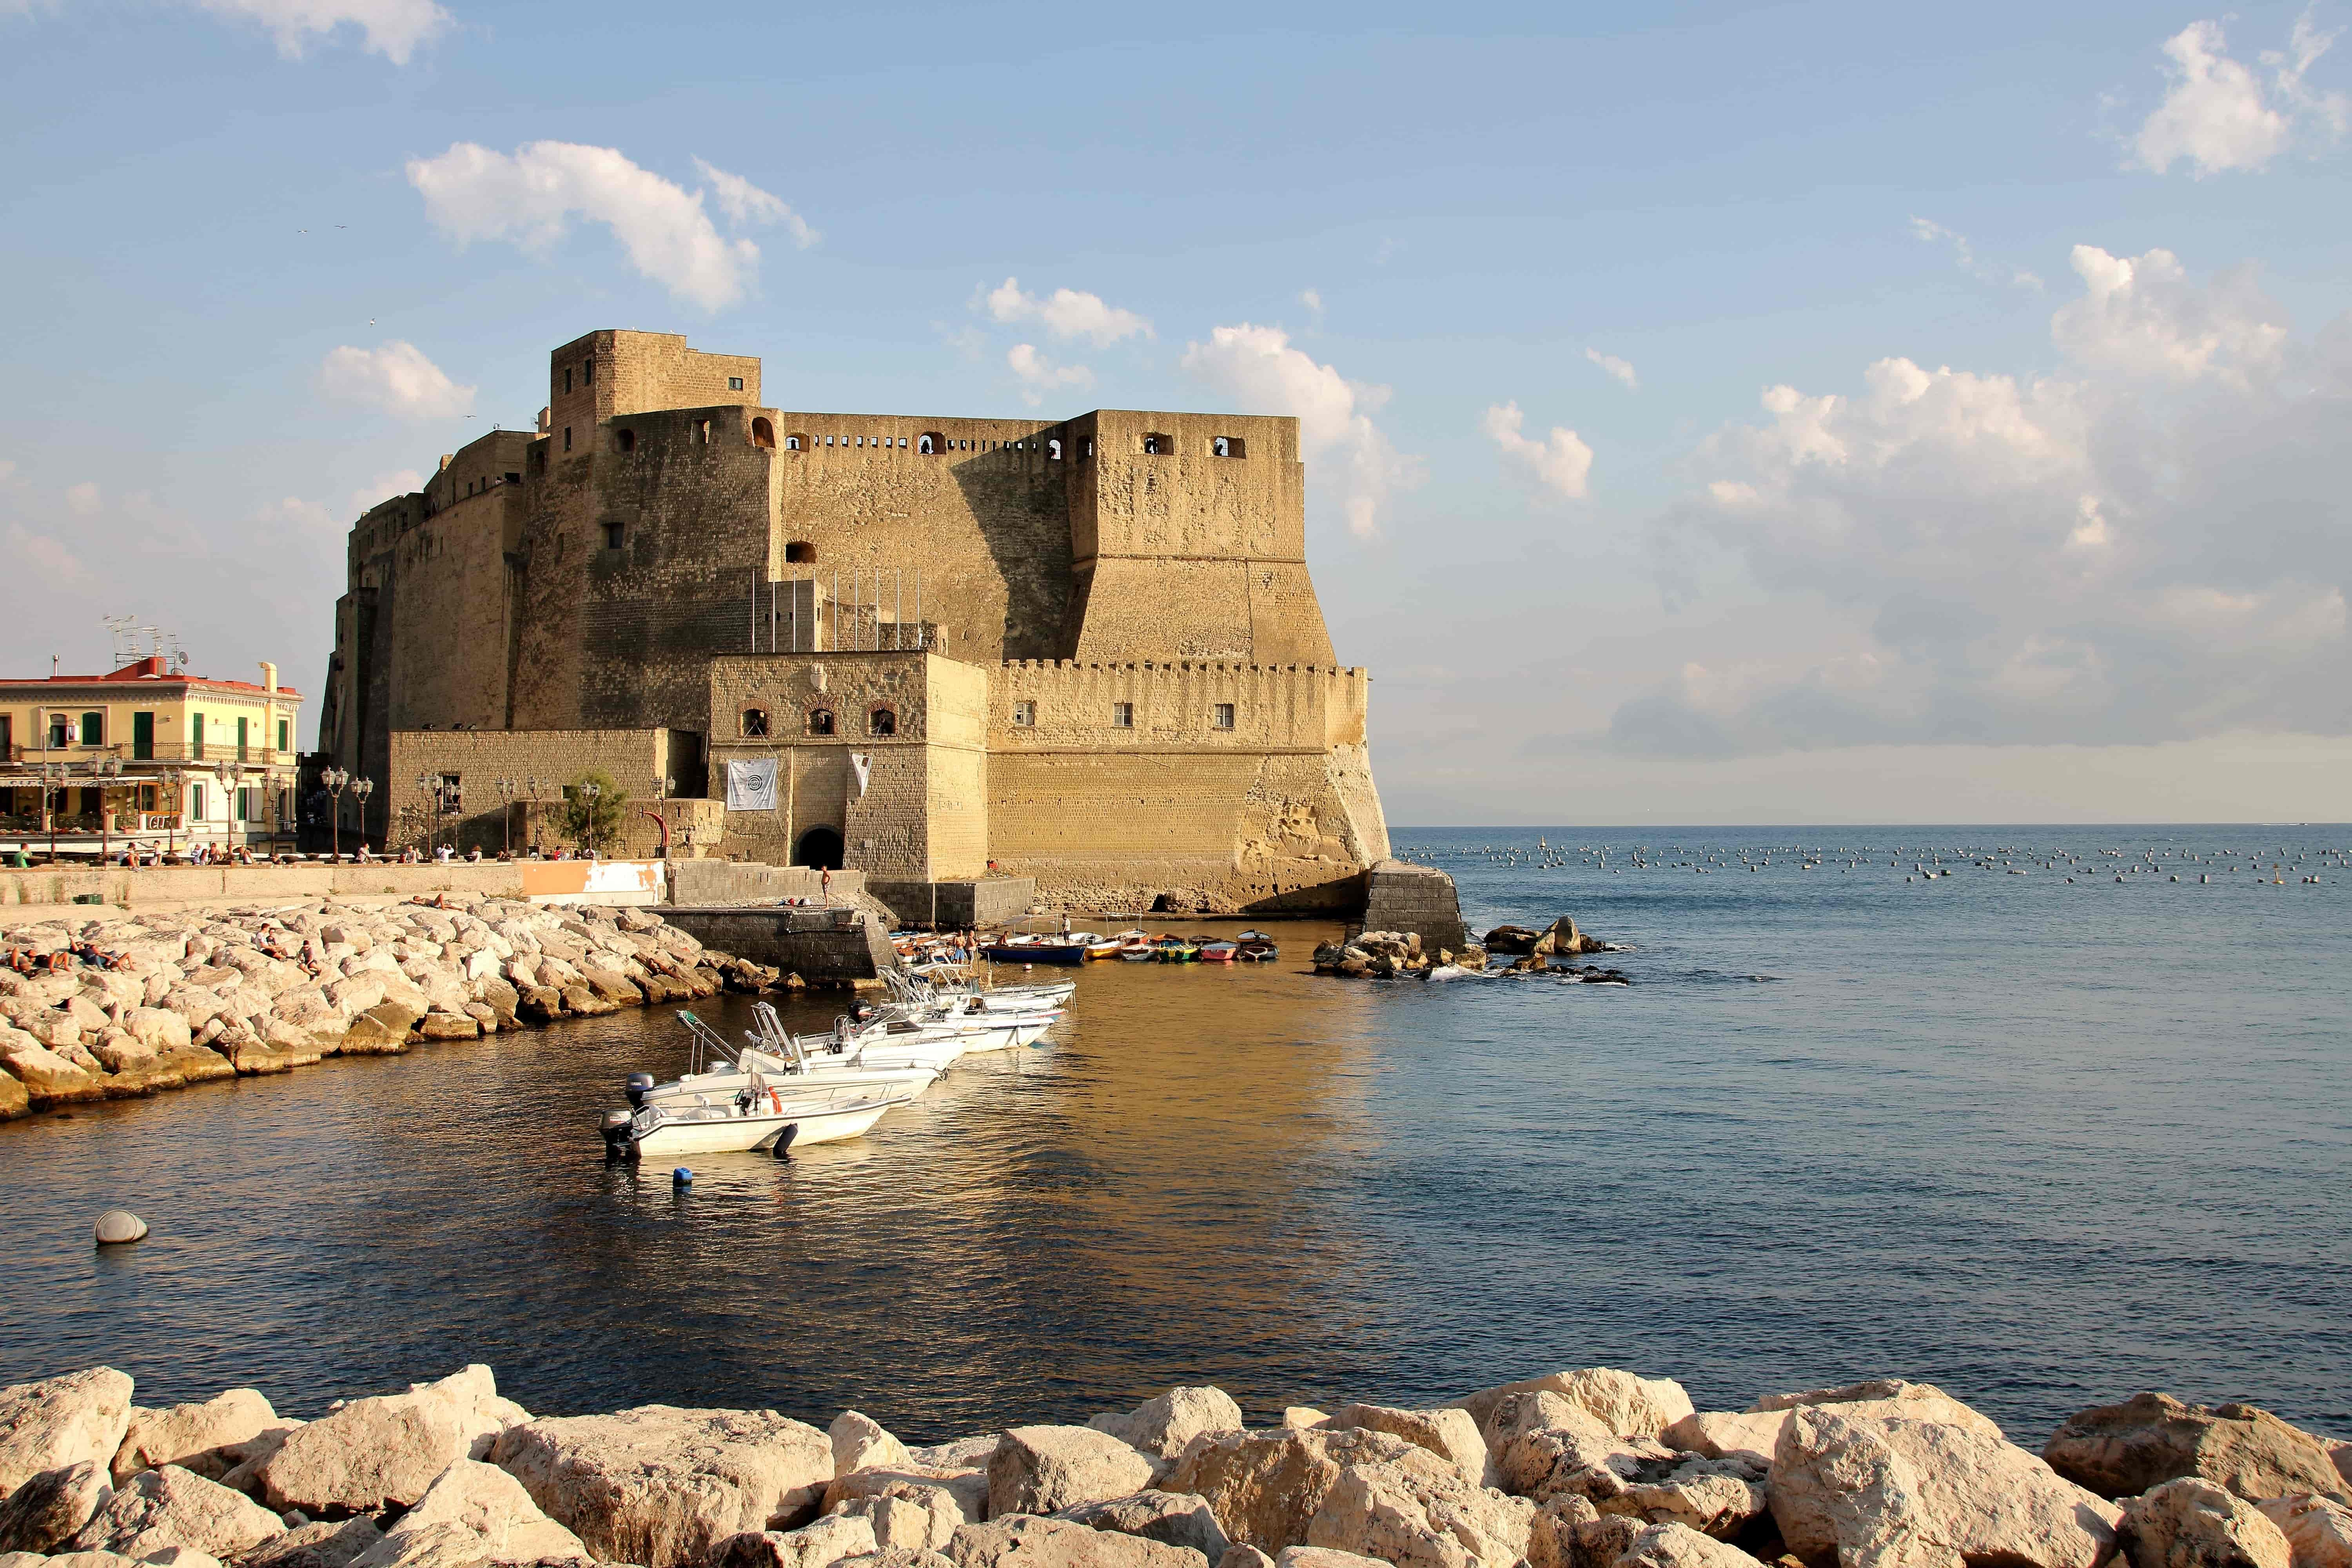 Castel dell'Ovo - Best Castles in Italy